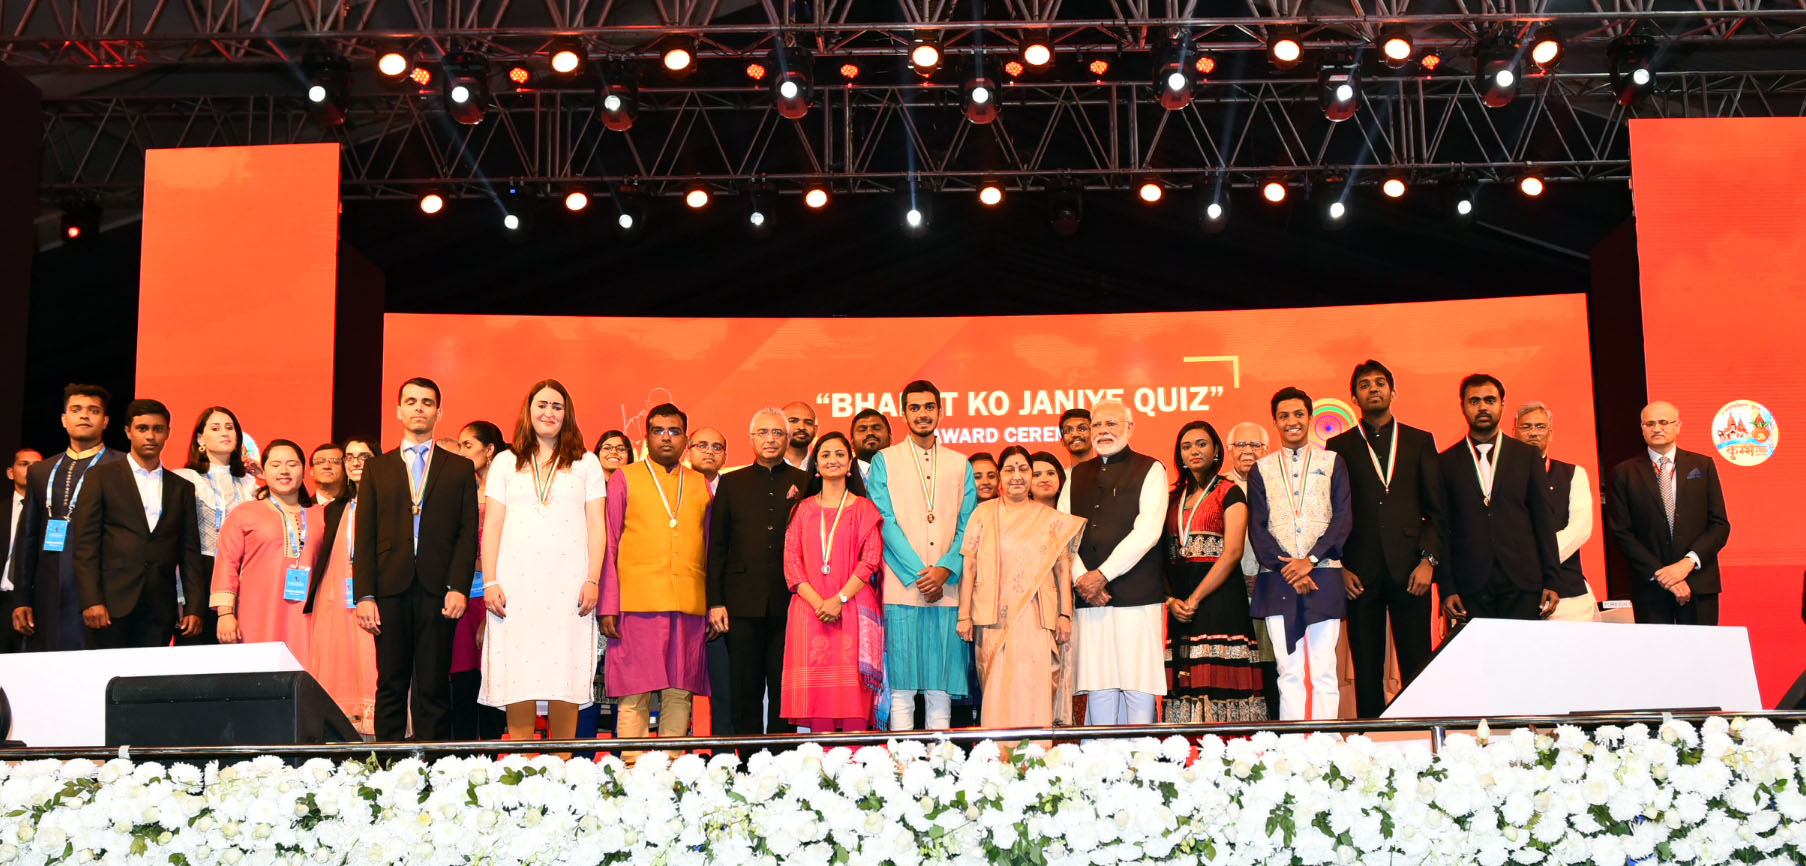 Prime Minister Narendra Modi with the winners of Know India Quiz, at the inauguration of the 15th Pravasi Bharatiya Divas convention 2019 in Varanasi. Prime Minister of Mauritius Pravind Jugnauth, the Minister for External Affairs Sushma Swaraj and other dignitaries are also seen. Photo courtesy: PMO